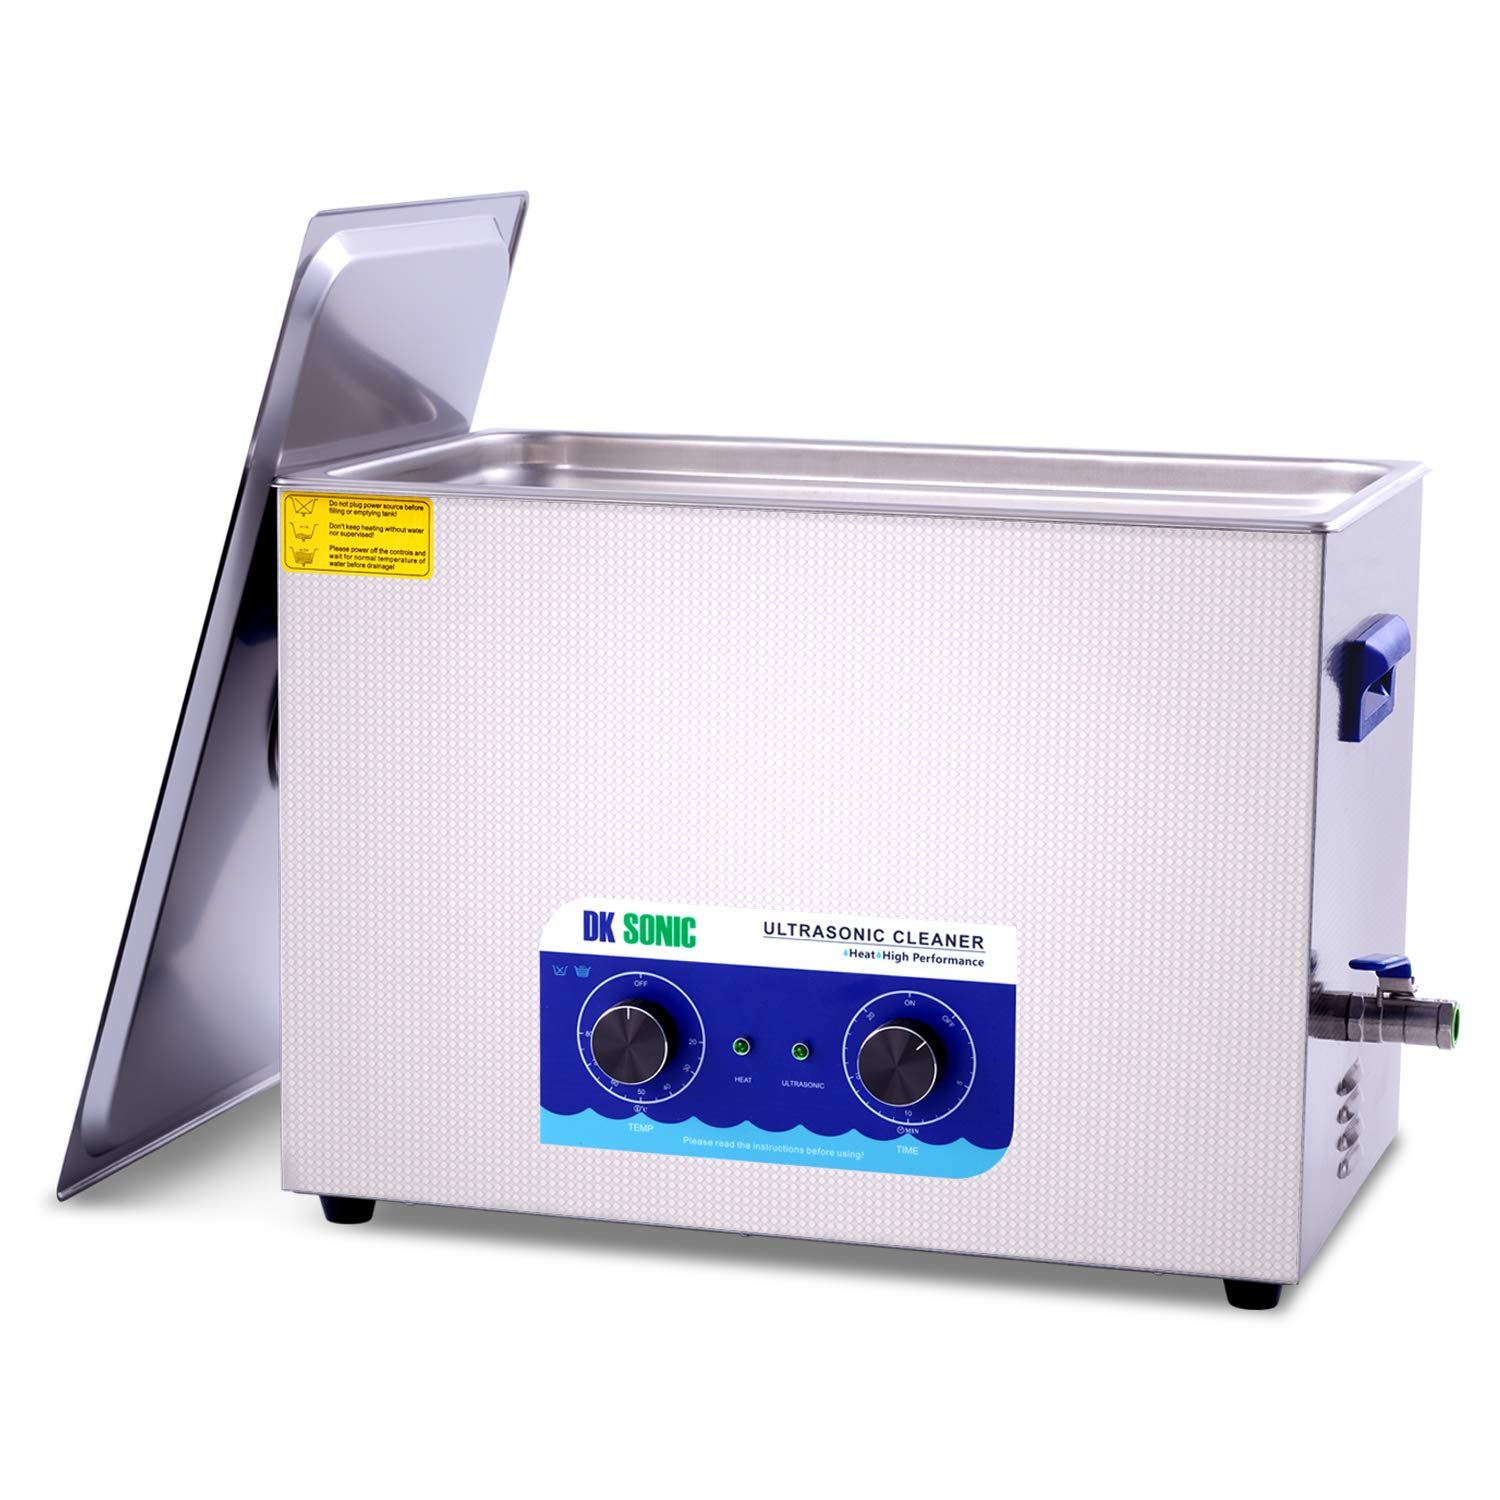 Large Commercial Ultrasonic Cleaner - DK SONIC 30L 600W Sonic Cleaner with Heater and Basket for Metal Parts,Carburetor,Fuel Injector,Brass,Auto Parts,Engine Parts,Motor Repair Tools,etc by DK SONIC